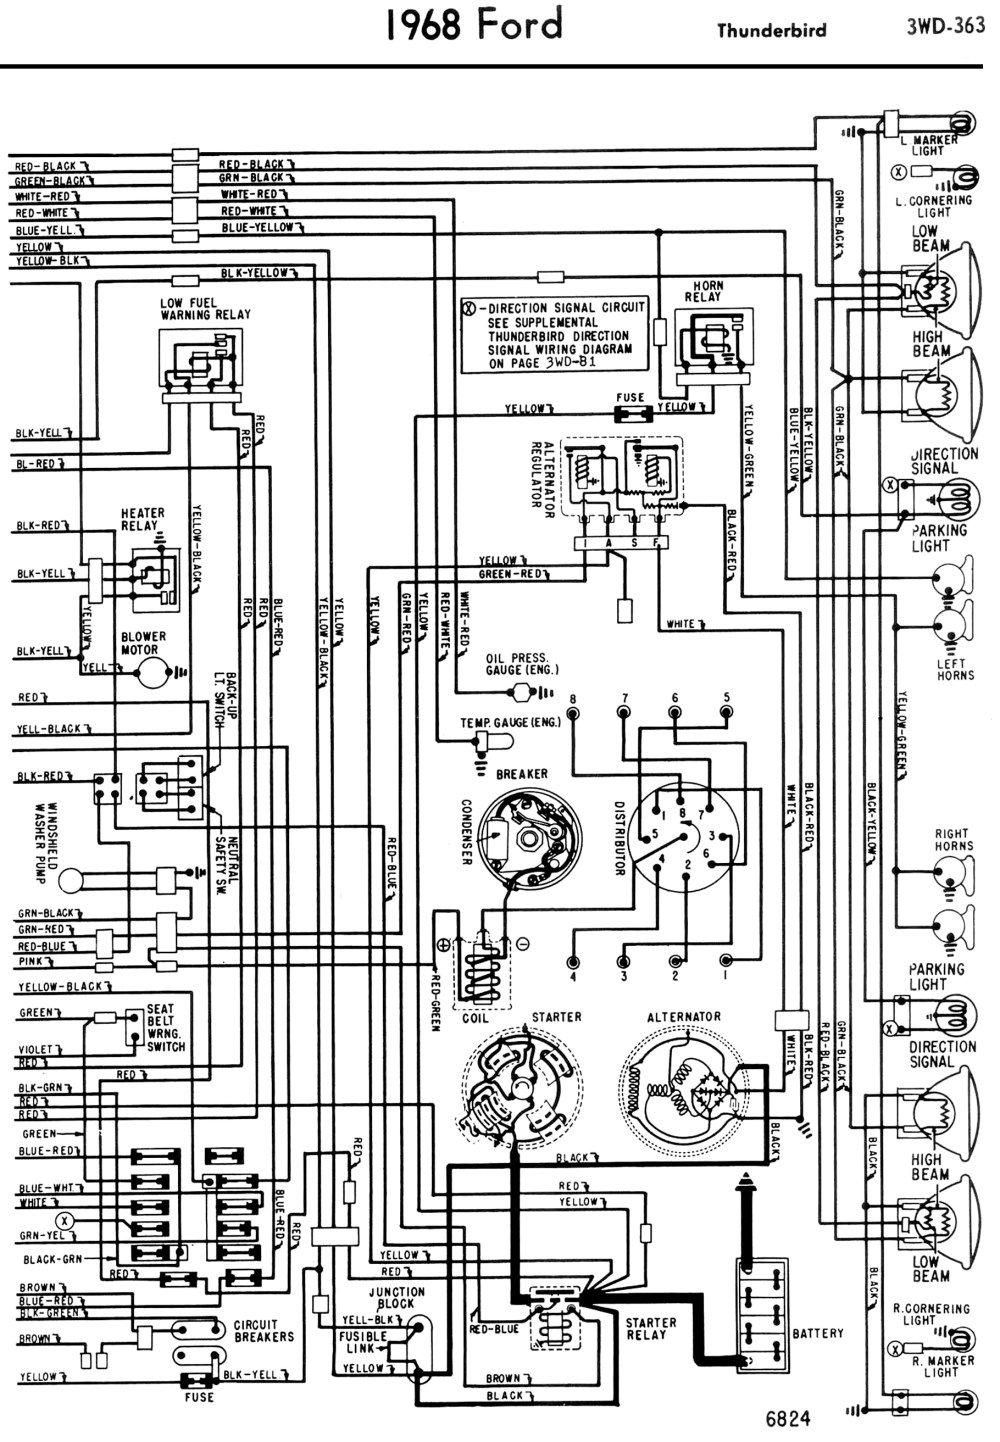 medium resolution of thunderbird wiring diagram wiring diagram name 1988 ford thunderbird wiring diagram ford thunderbird wiring diagram